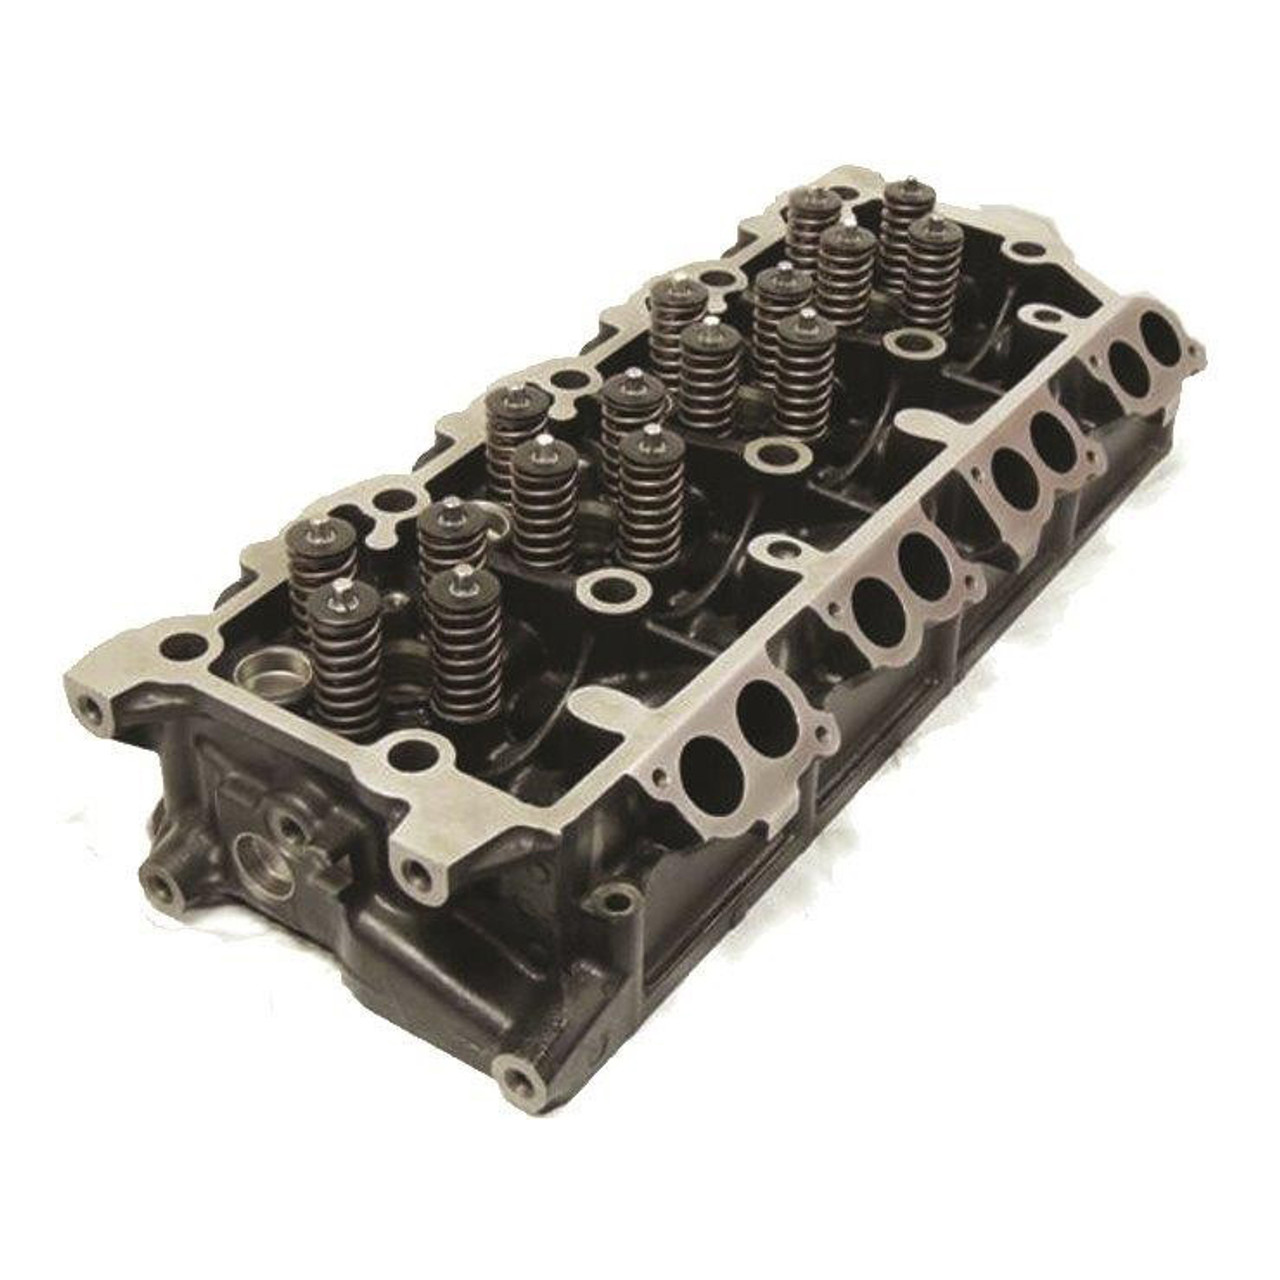 Black Diamond 6.0 Powerstroke New 18MM Replacement Cylinder Head Loaded